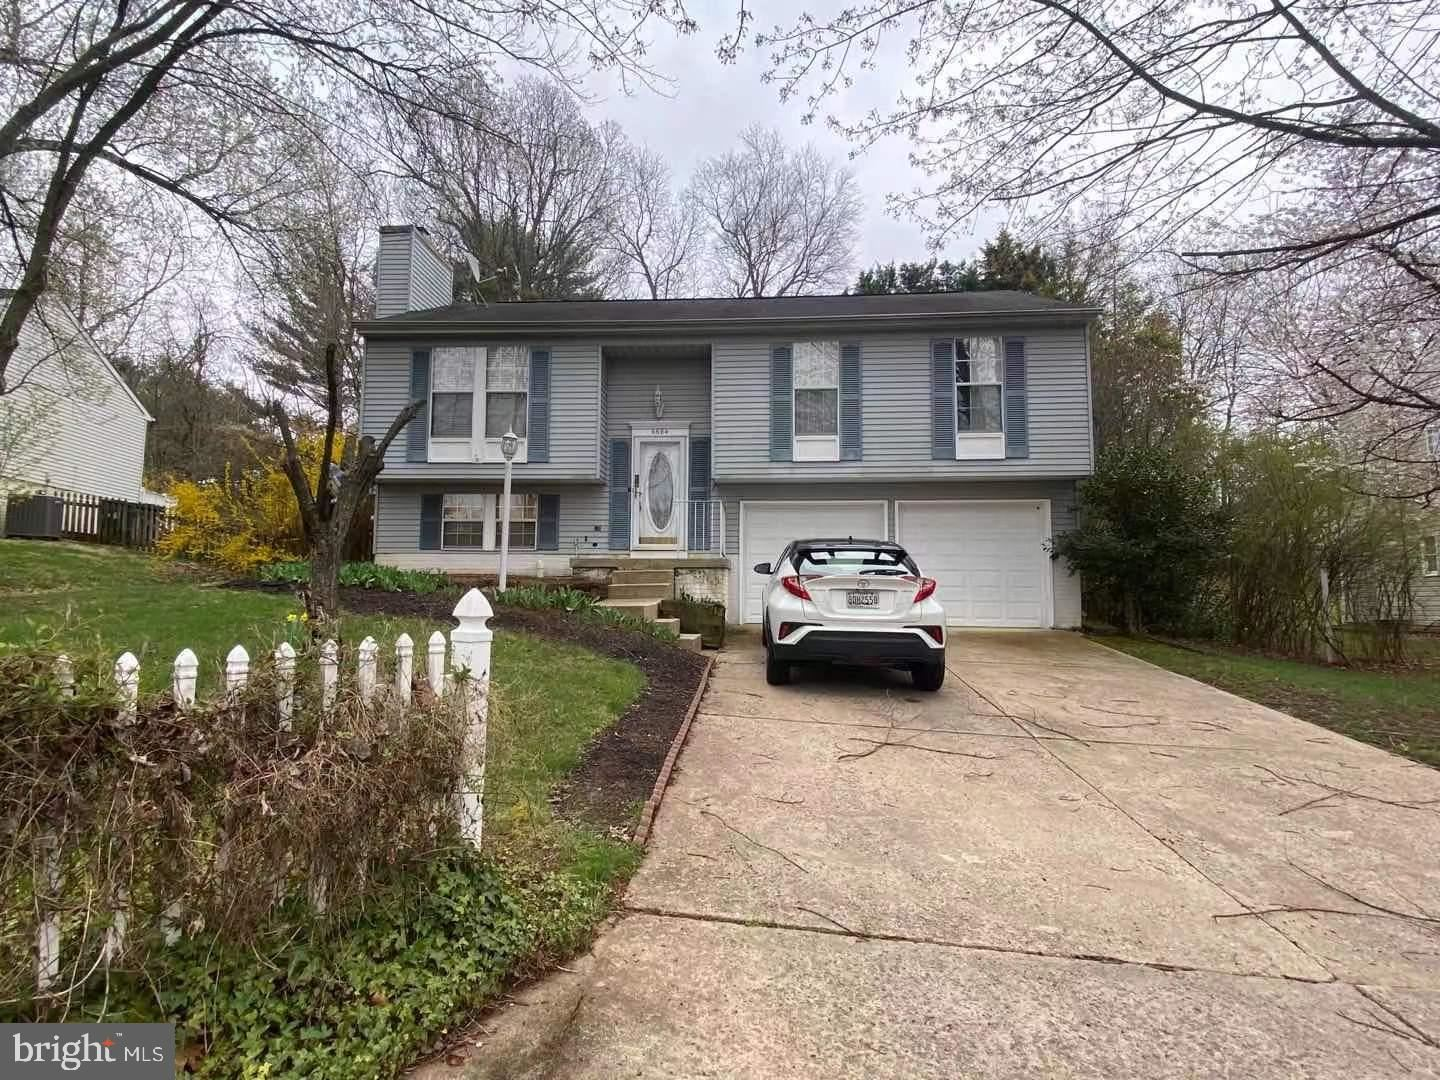 6684 MID SUMMER NIGHT CT, Eldersburg, MD 21784 - MLS#: MDCR203516